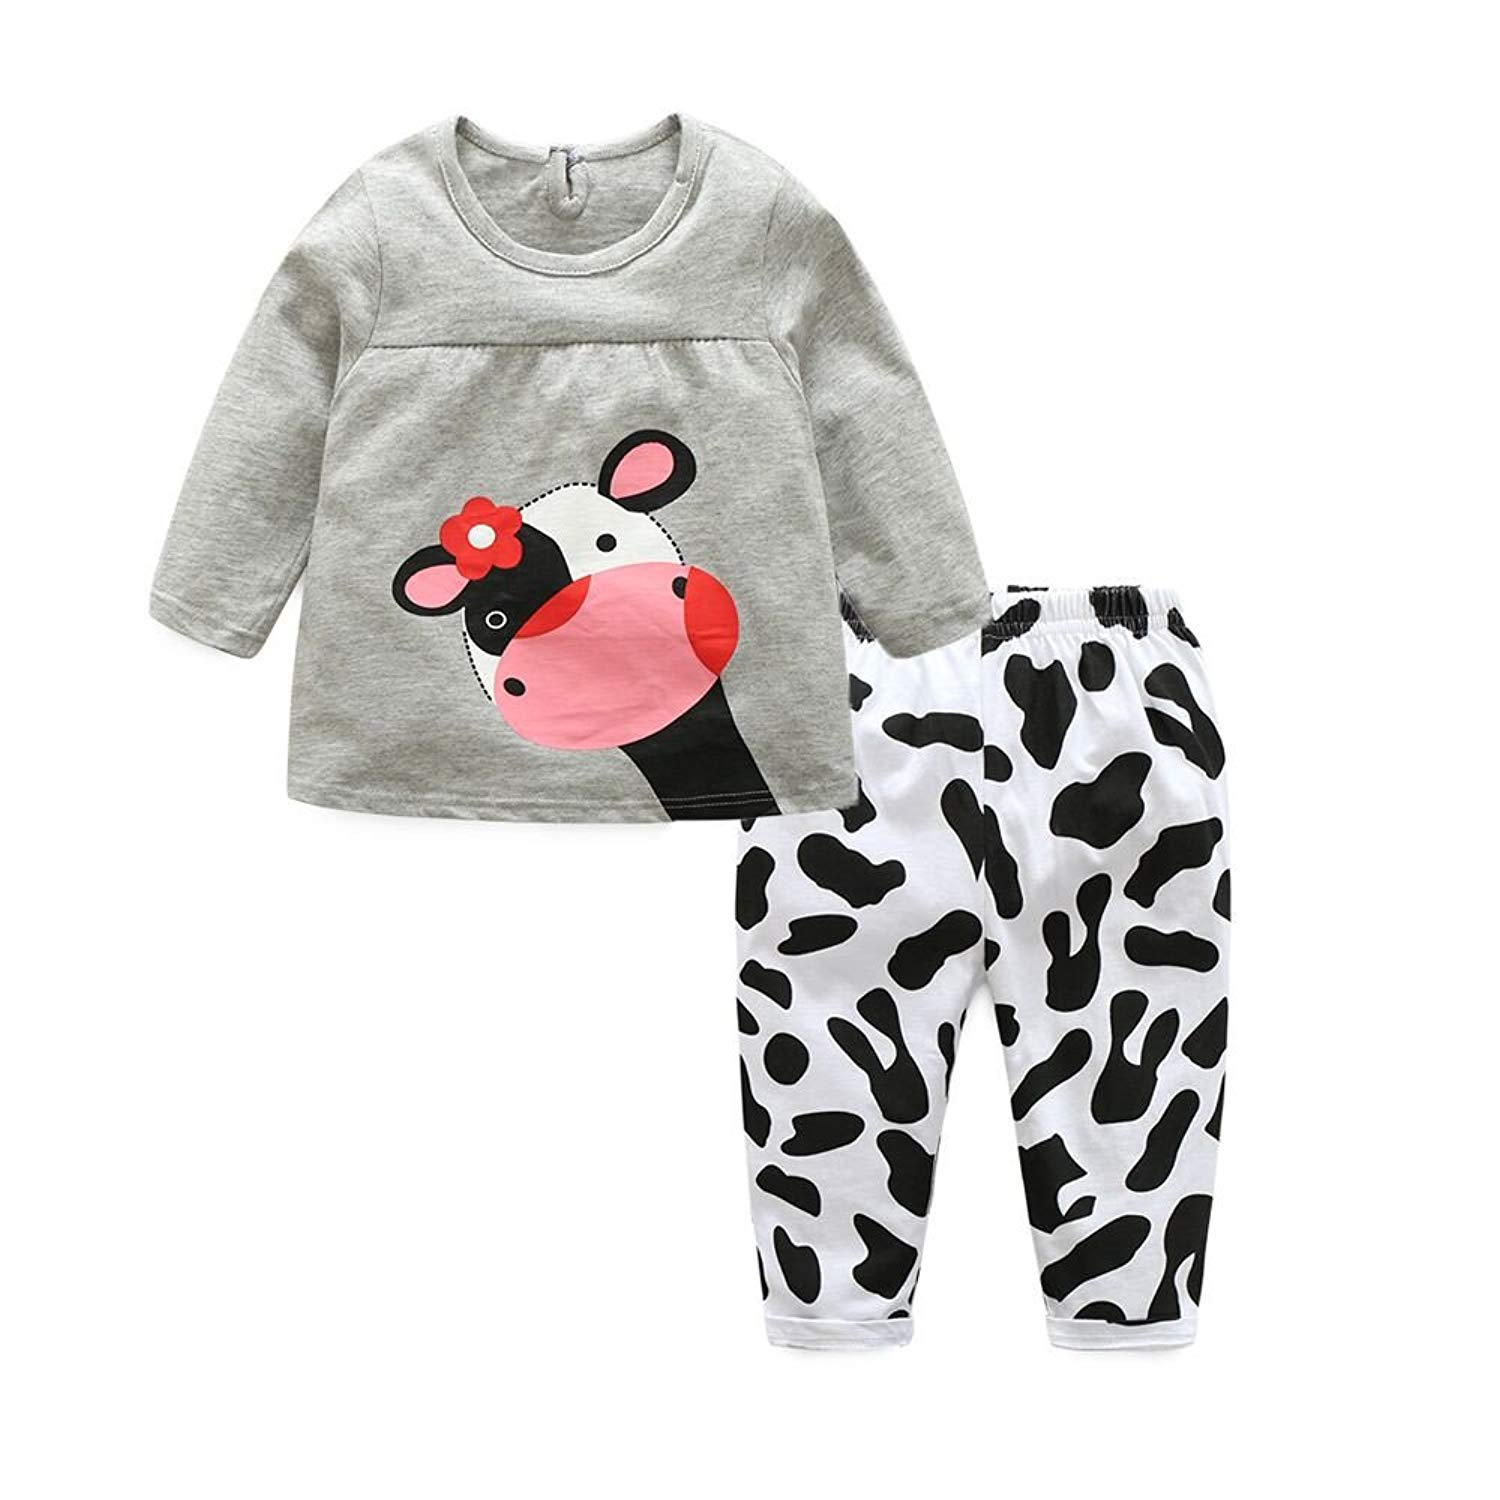 Moyikiss Studio Adorable Toddler Baby Girls Clothes Sets Cow Pattern Long Sleeve 2pcs Outfits